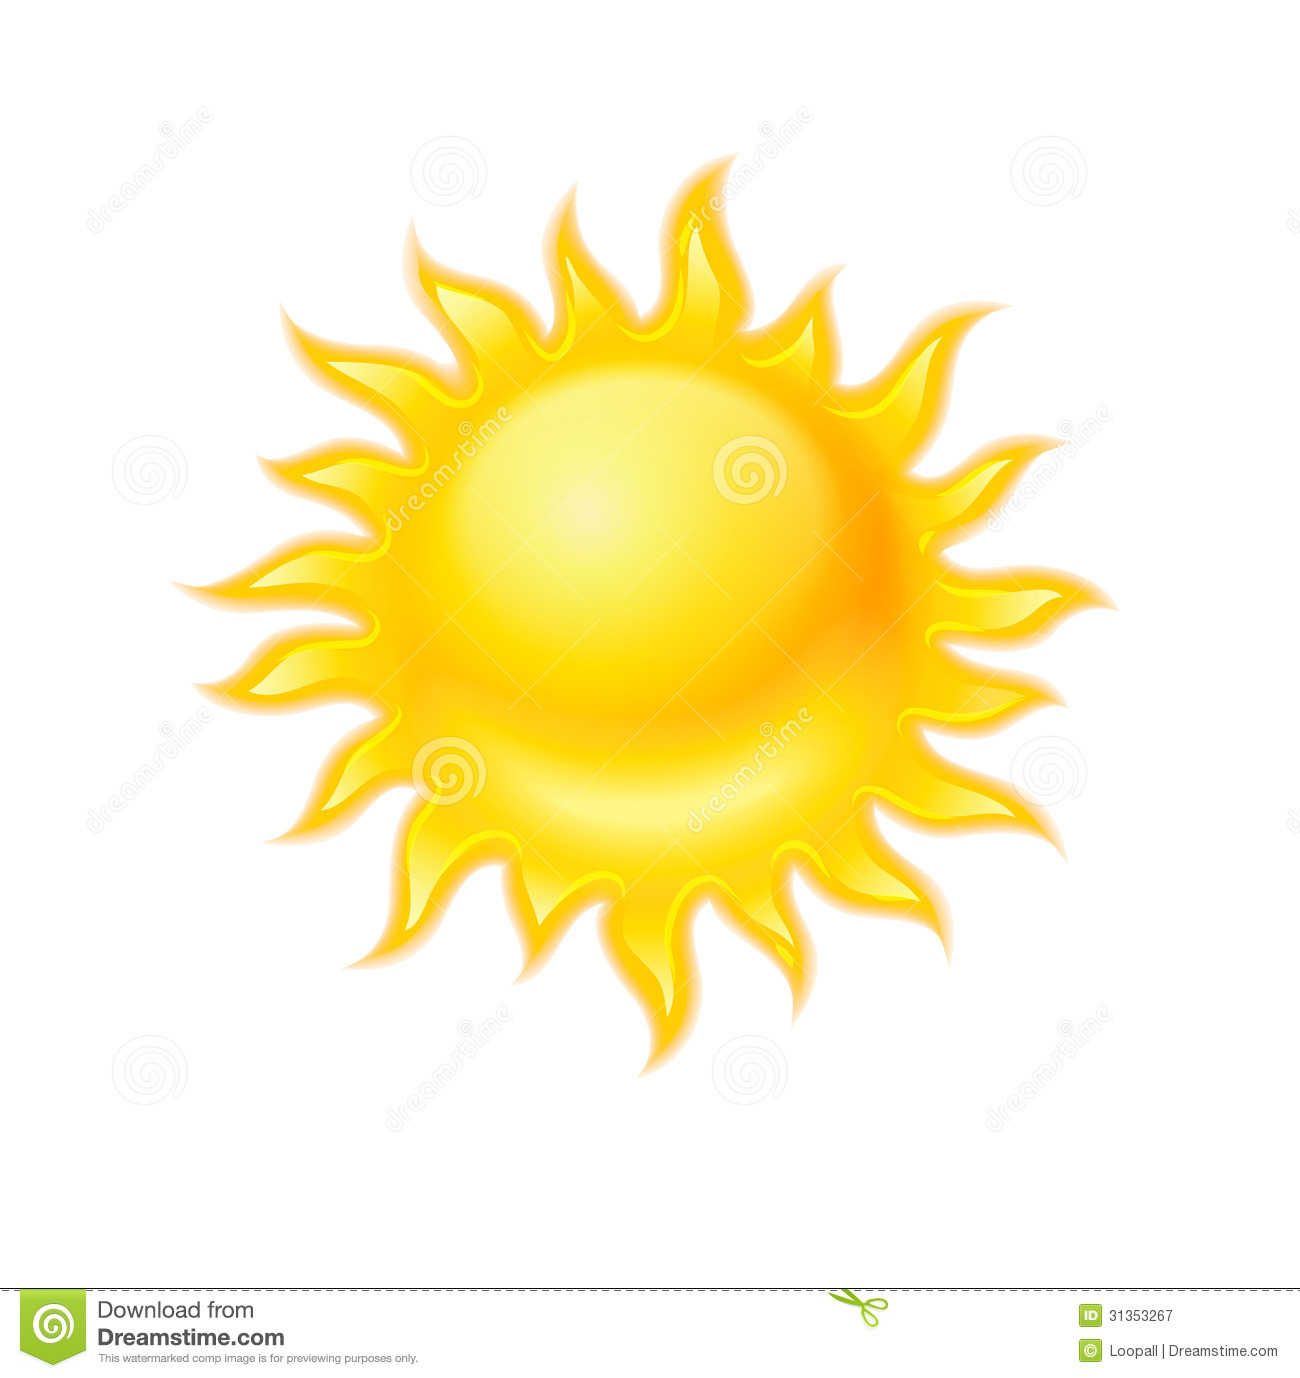 Hot yellow sun icon isolated royalty free stock photography image